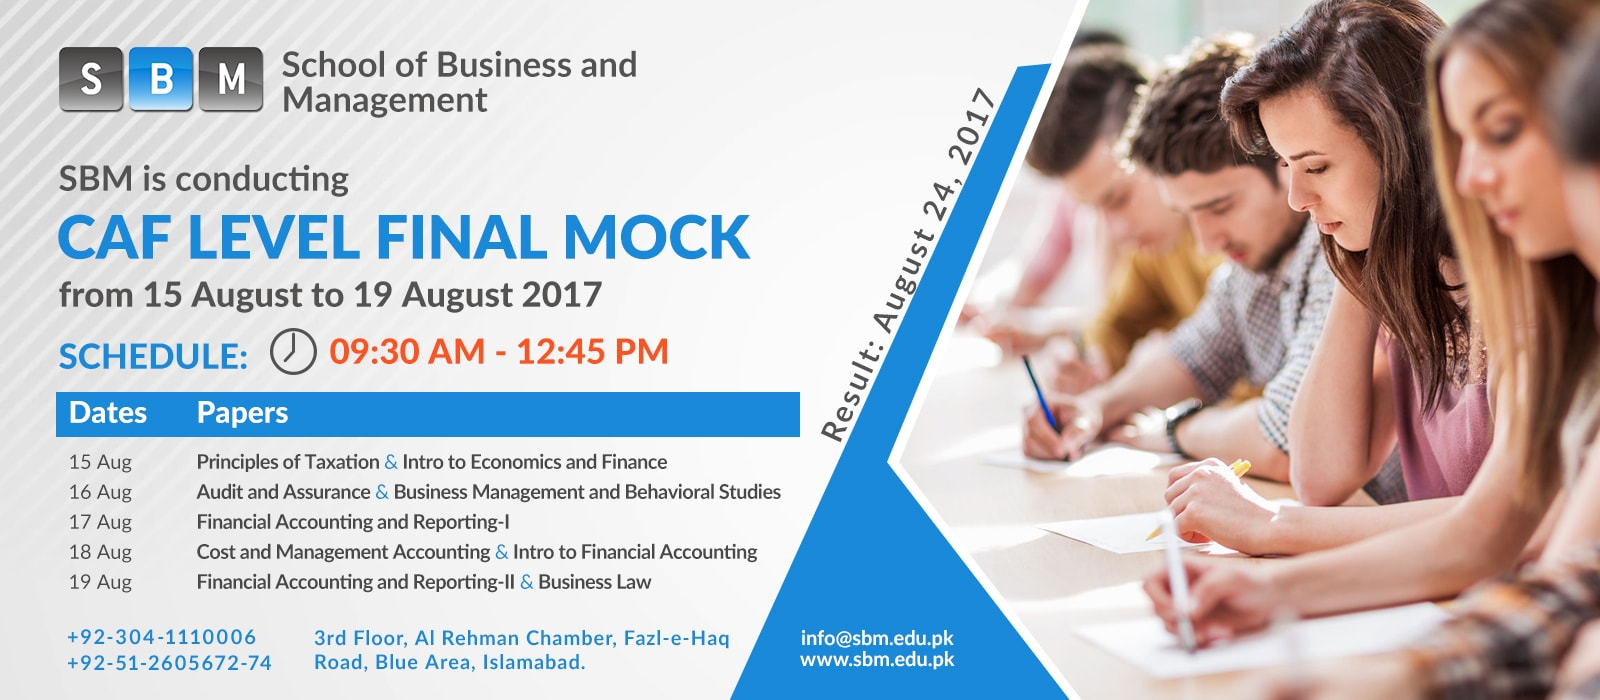 SBM is conducting final mock exam for CAF level students